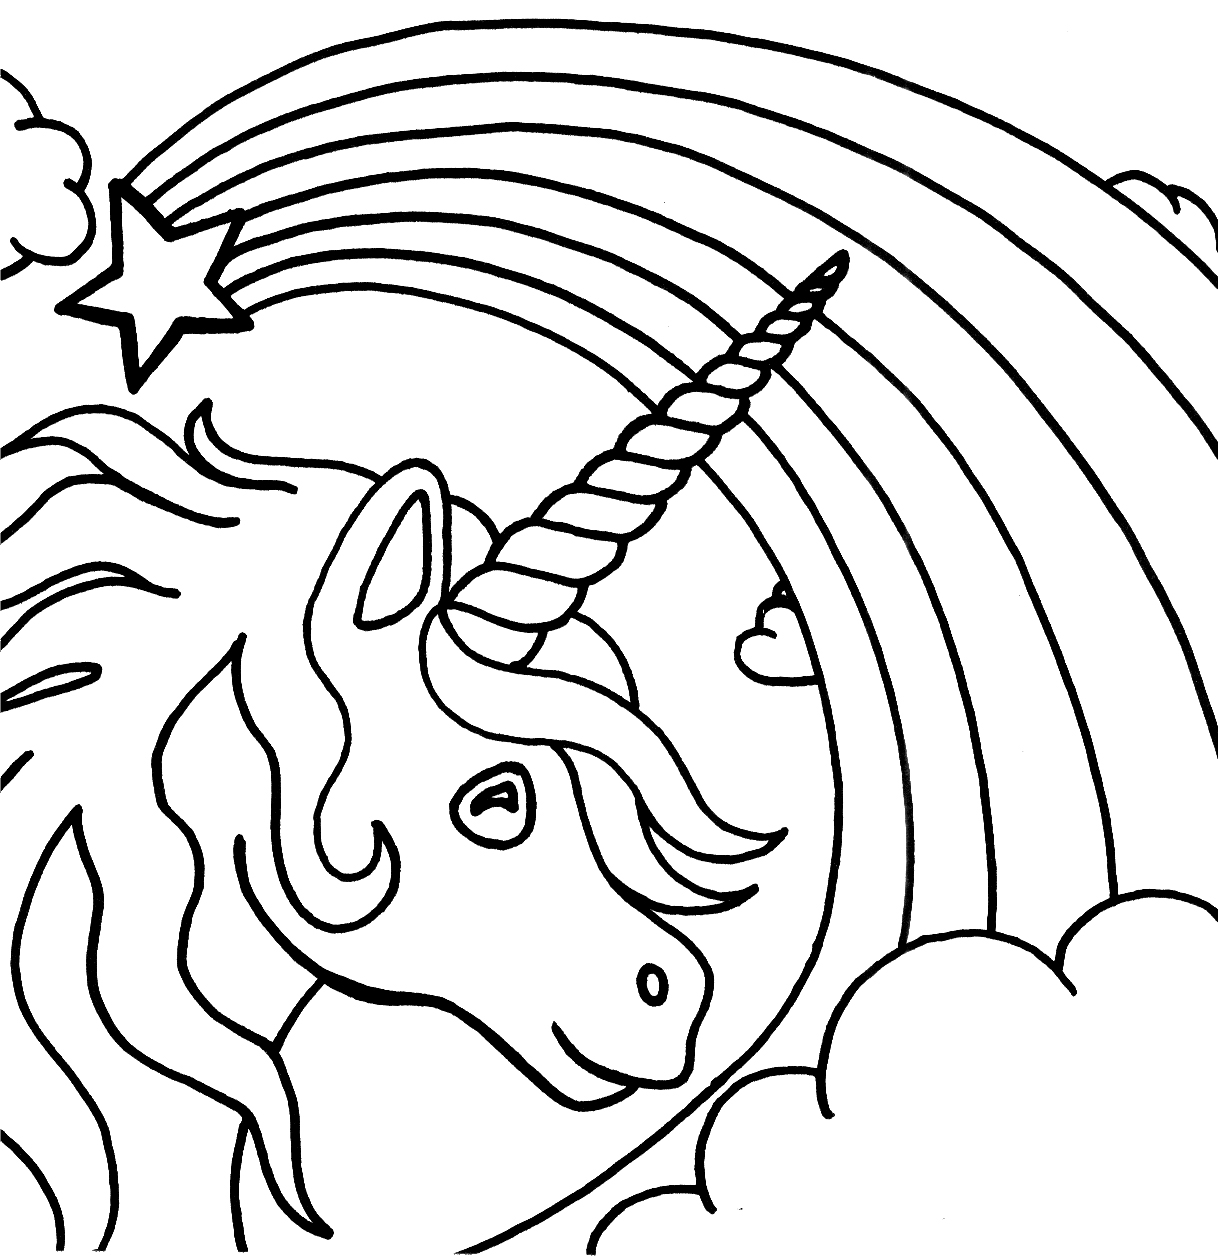 free printable unicorn coloring pictures unicorn coloring pages to download and print for free pictures coloring unicorn free printable